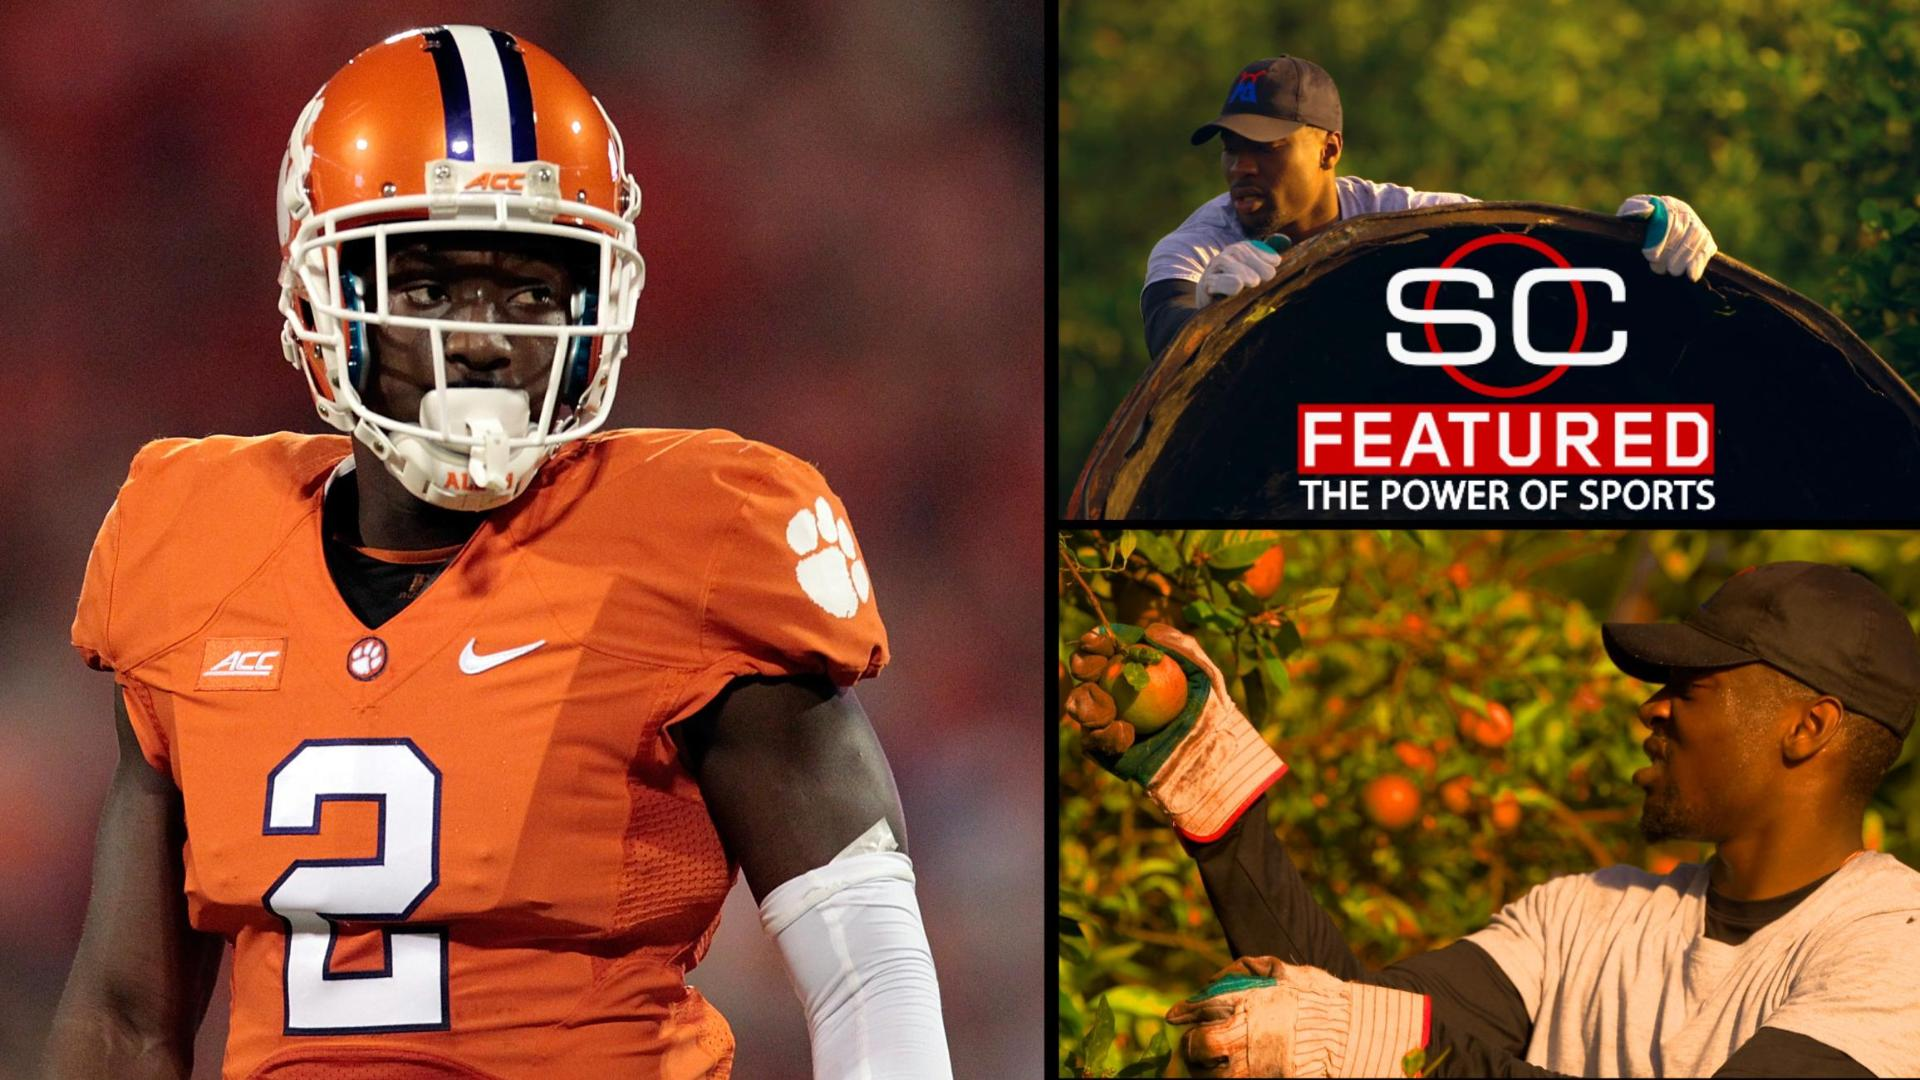 SC Featured preview: Mackensie Alexander's field of opportunity